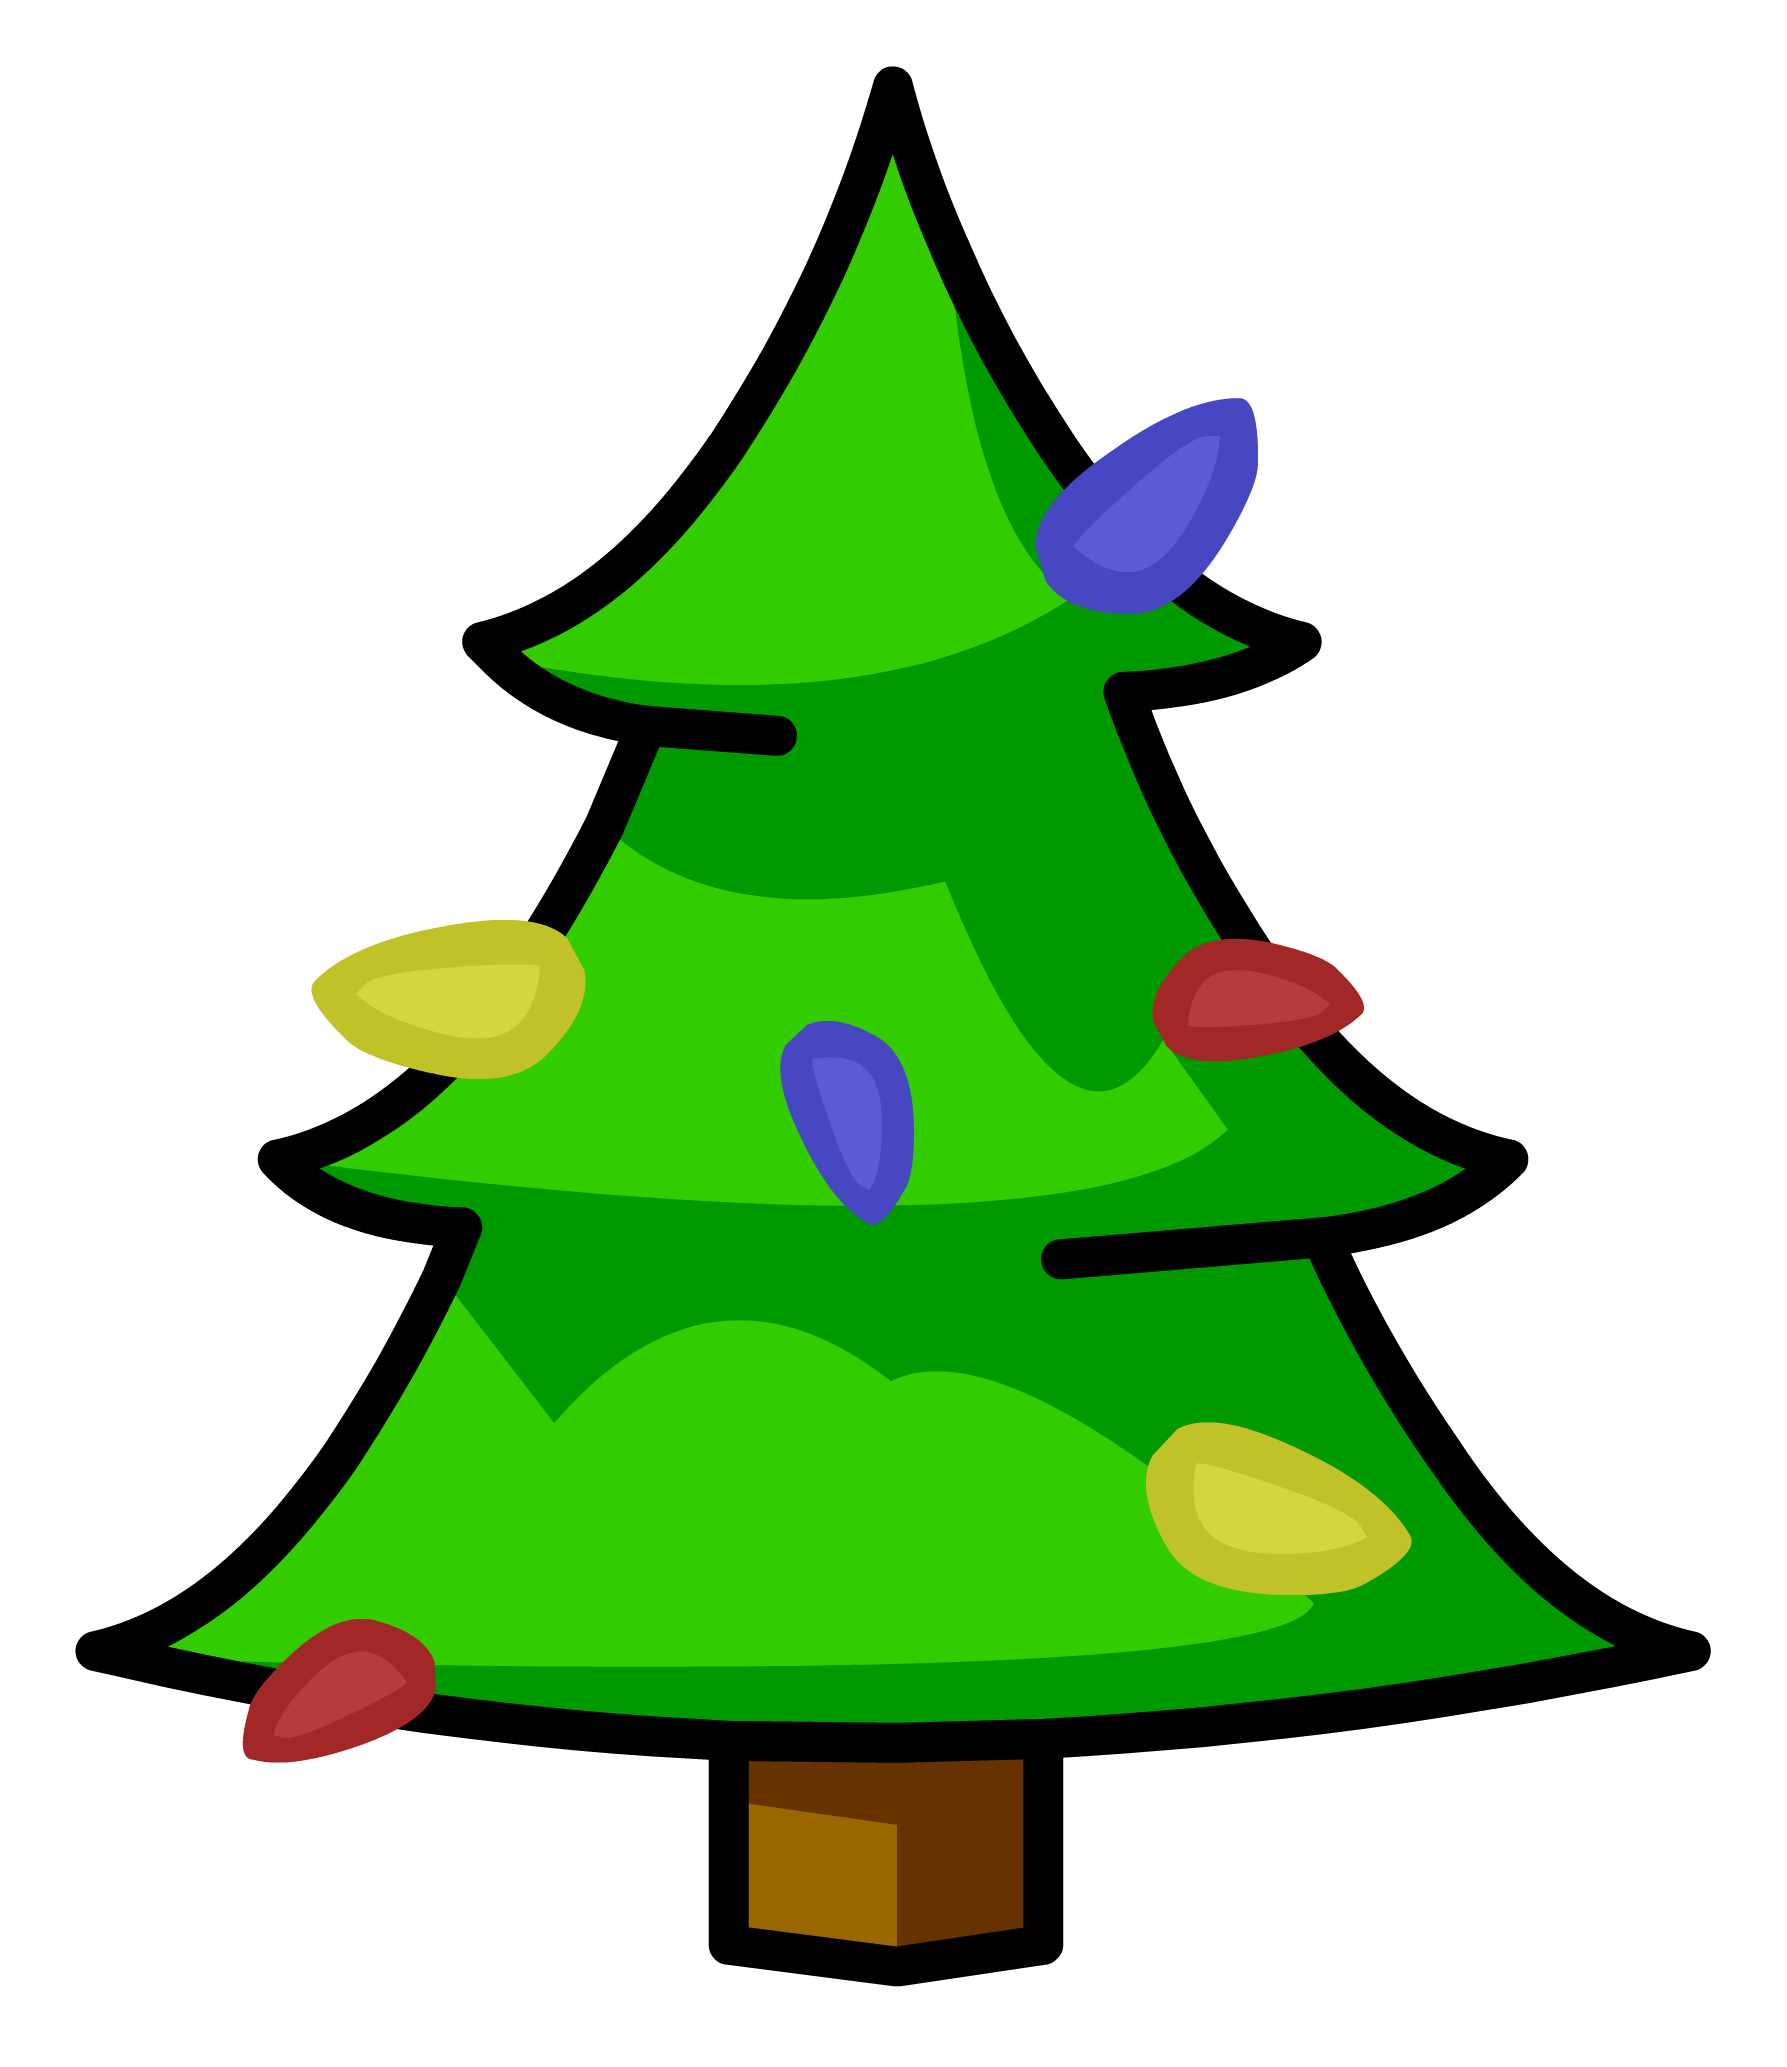 Christmas tree shop clipart picture freeuse Christmas Tree pin | Club Penguin Wiki | FANDOM powered by Wikia picture freeuse